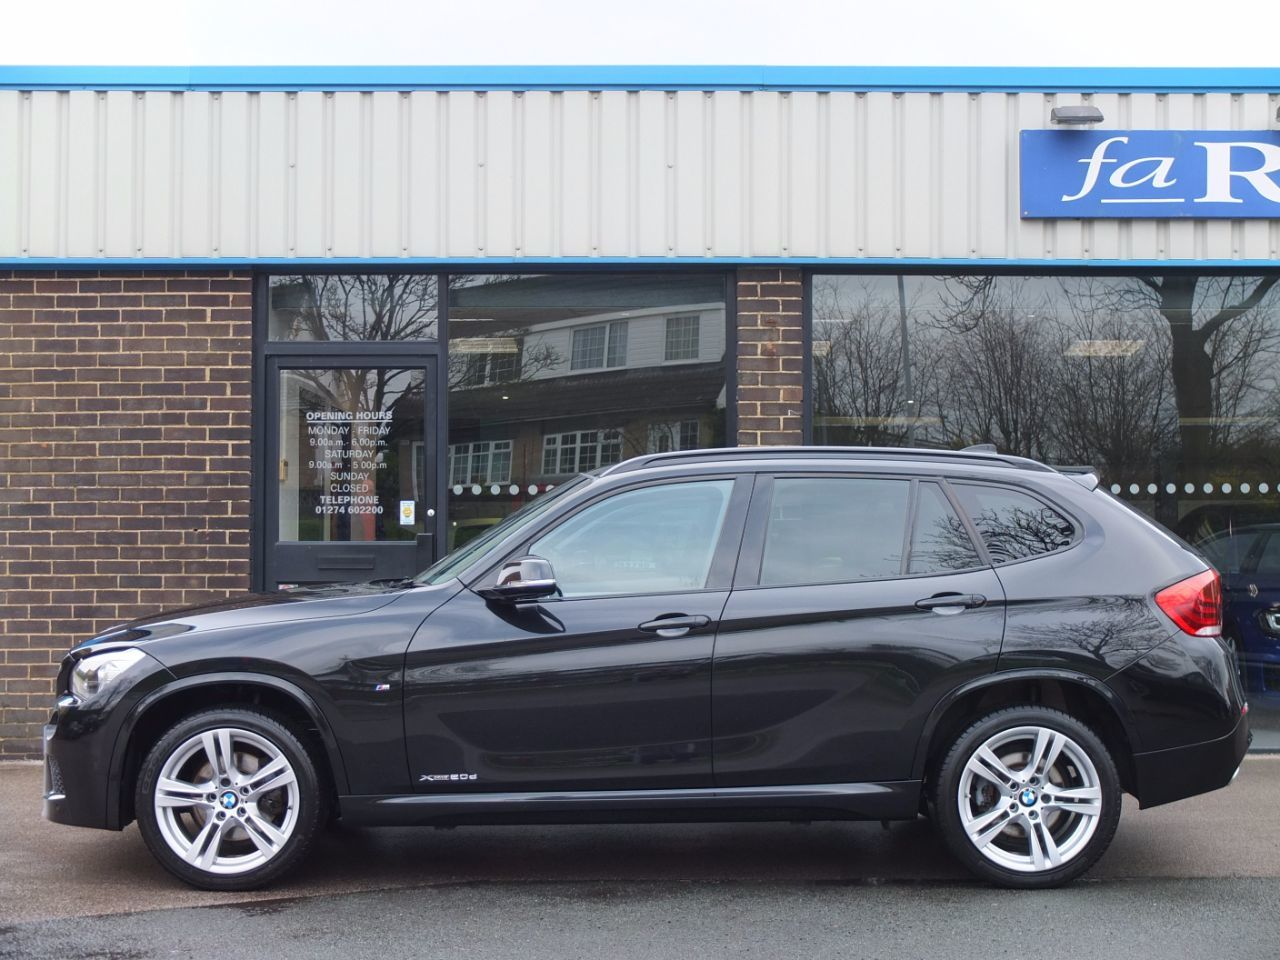 second hand bmw x1 xdrive 20d m sport auto for sale in bradford west yorkshire fa roper ltd. Black Bedroom Furniture Sets. Home Design Ideas